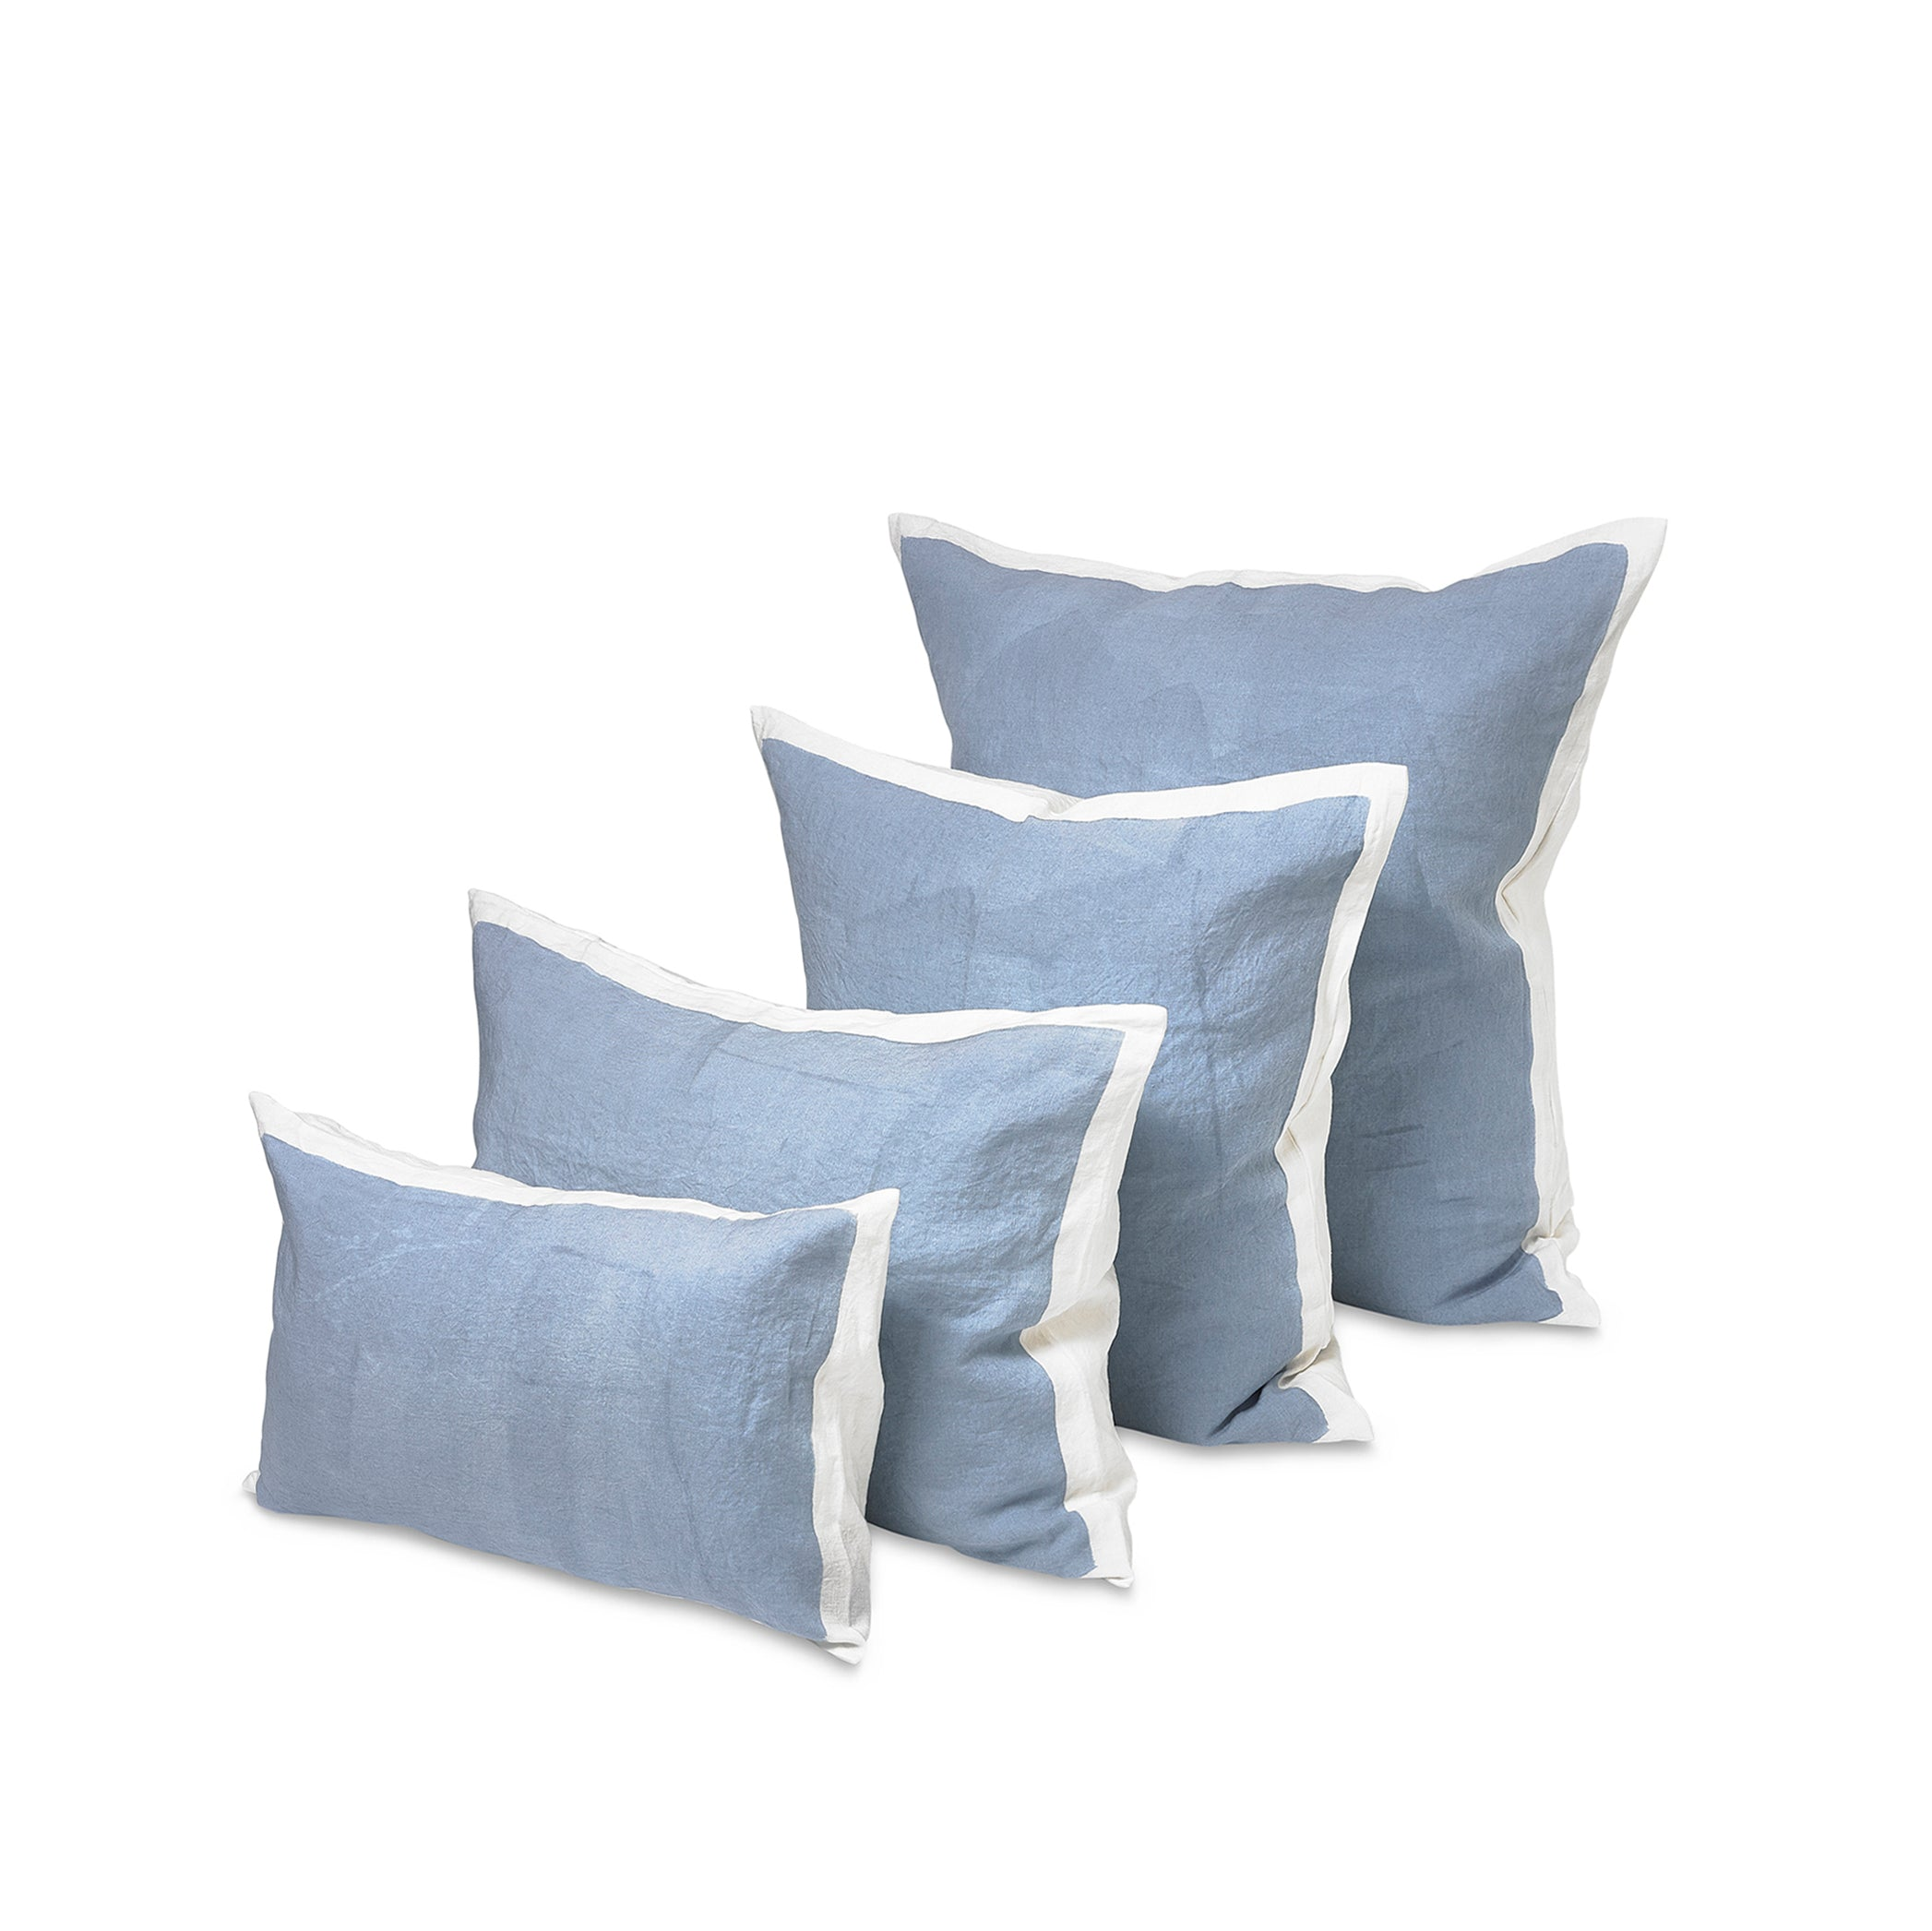 Hand Painted Linen Cushion Cover in Pale Blue, 50cm x 30cm